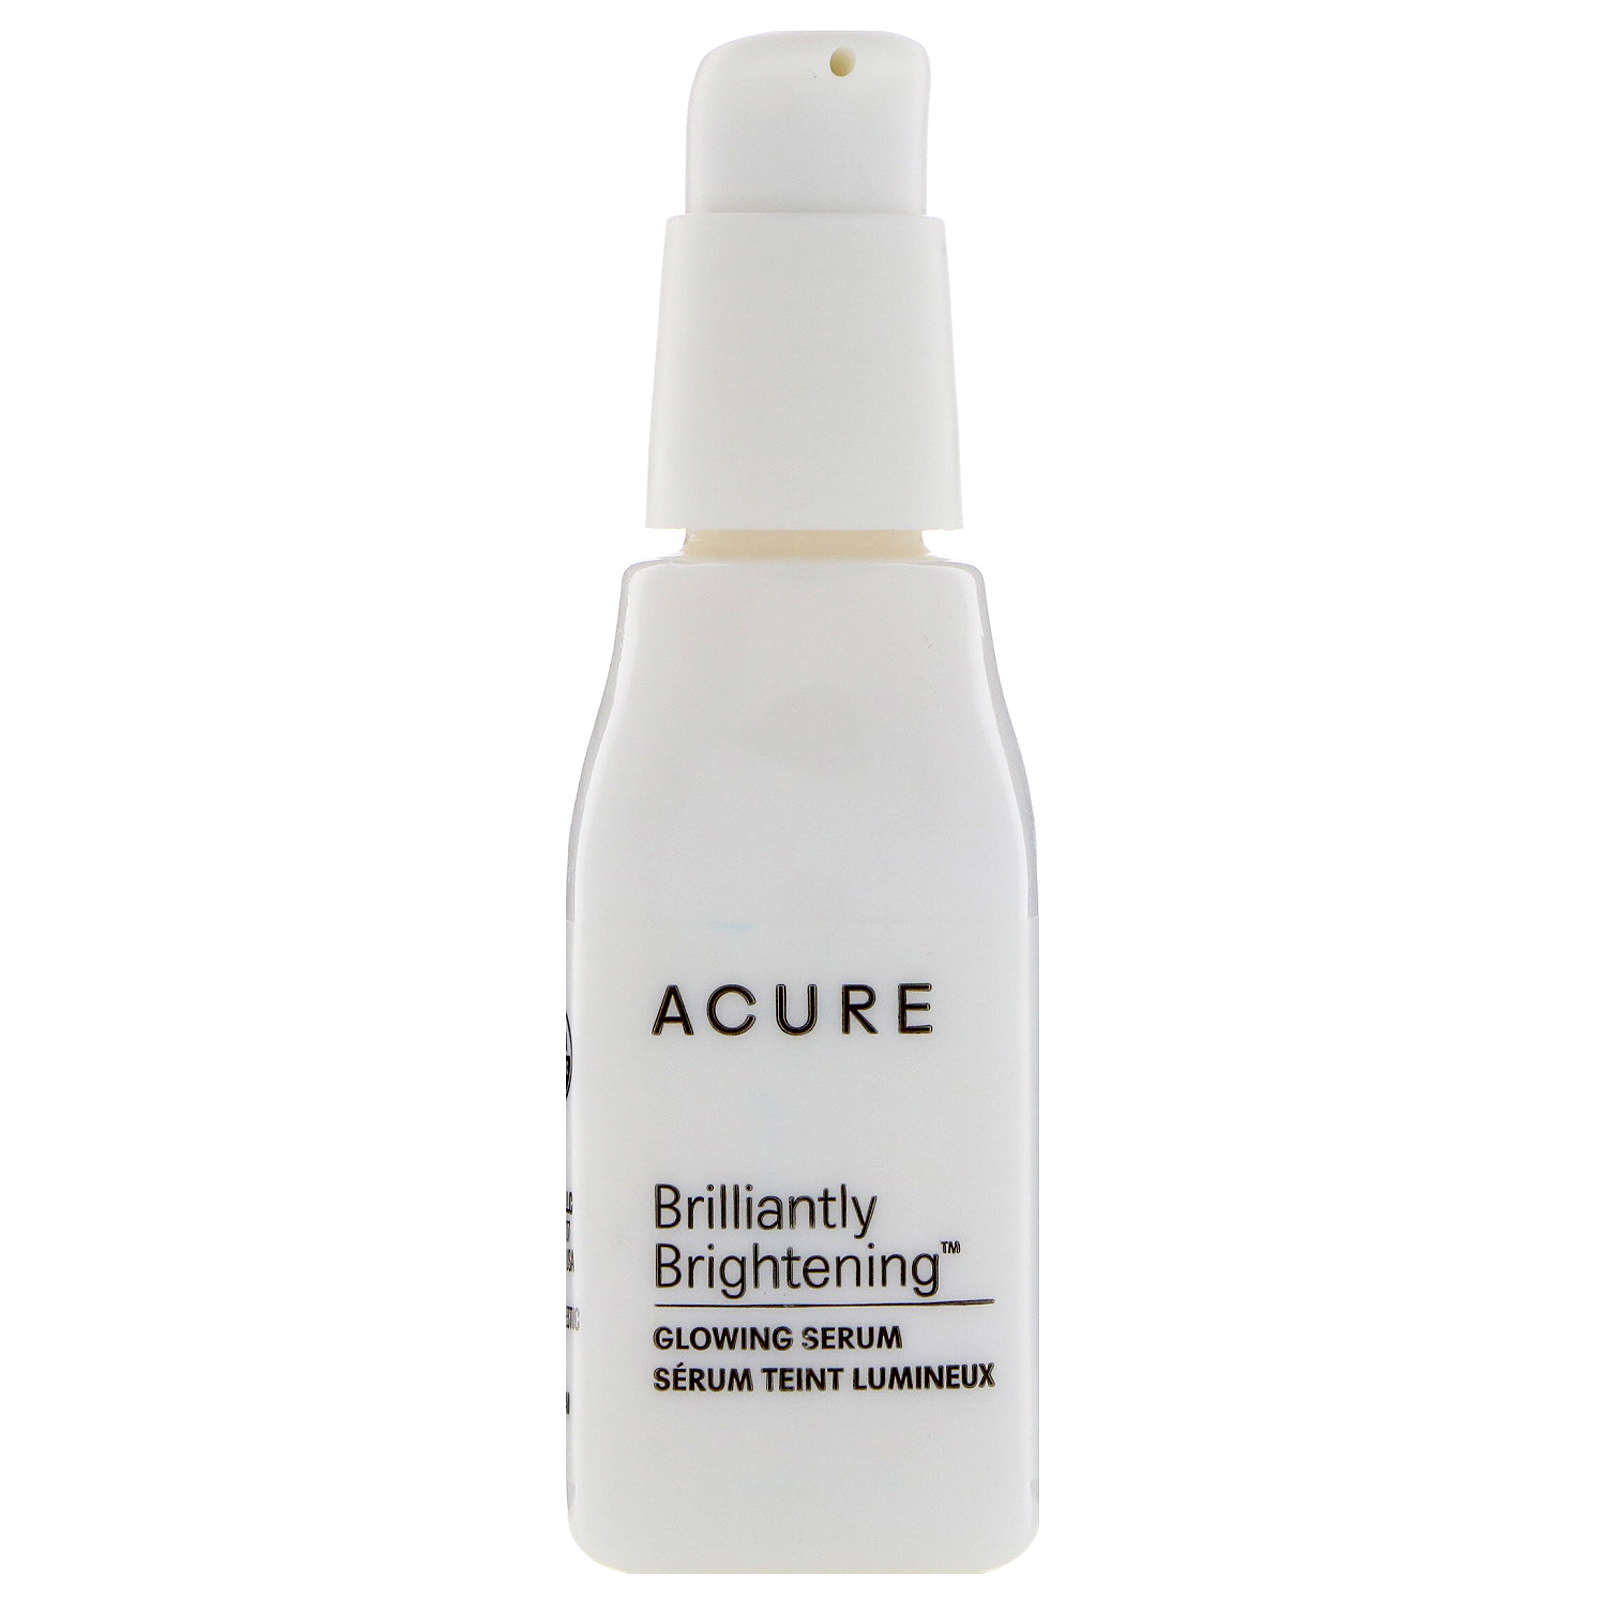 Acure, Brilliantly Brightening, Glowing Serum, 1 Fl Oz (30